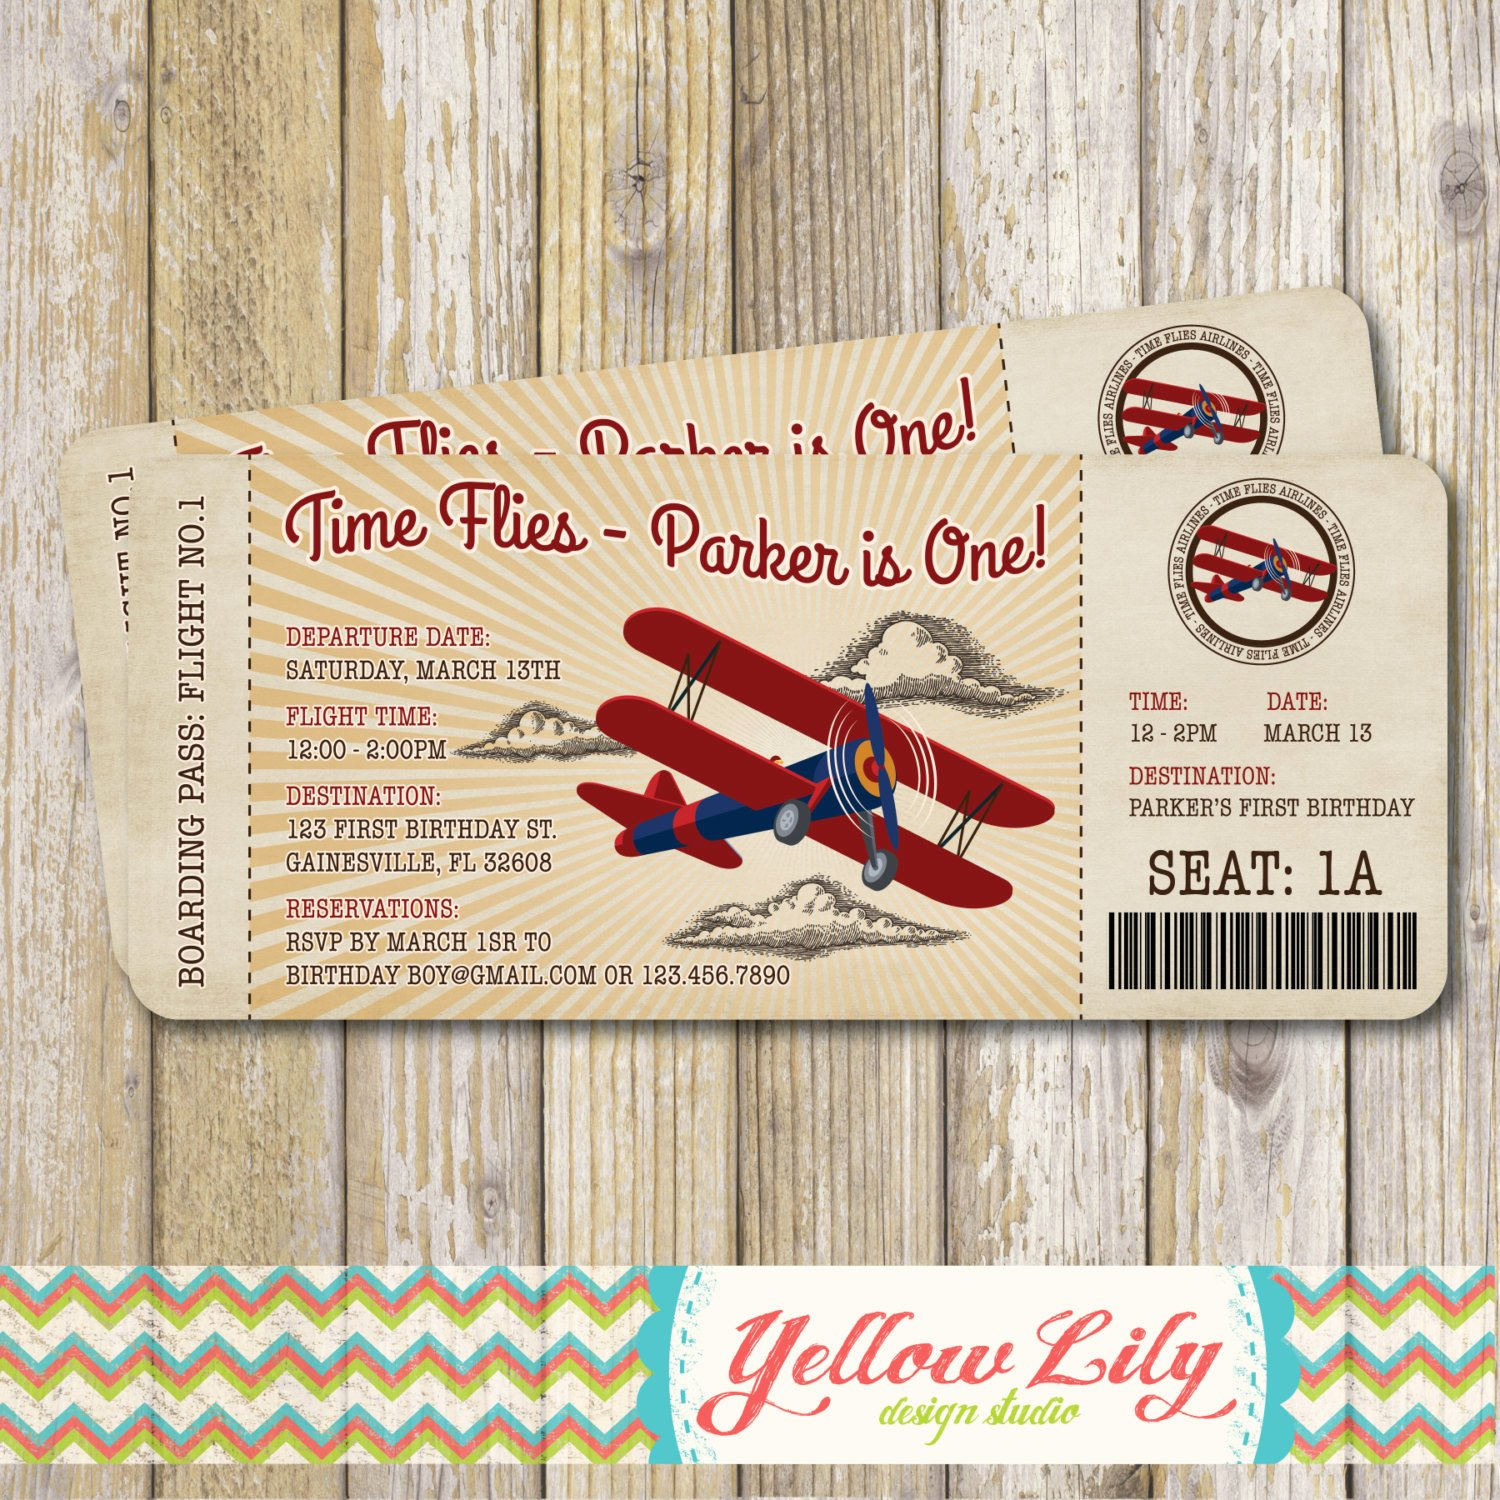 Boarding Pass Birthday Invitations Best Of Vintage Airplane Boarding Pass Birthday Invitation Vintage